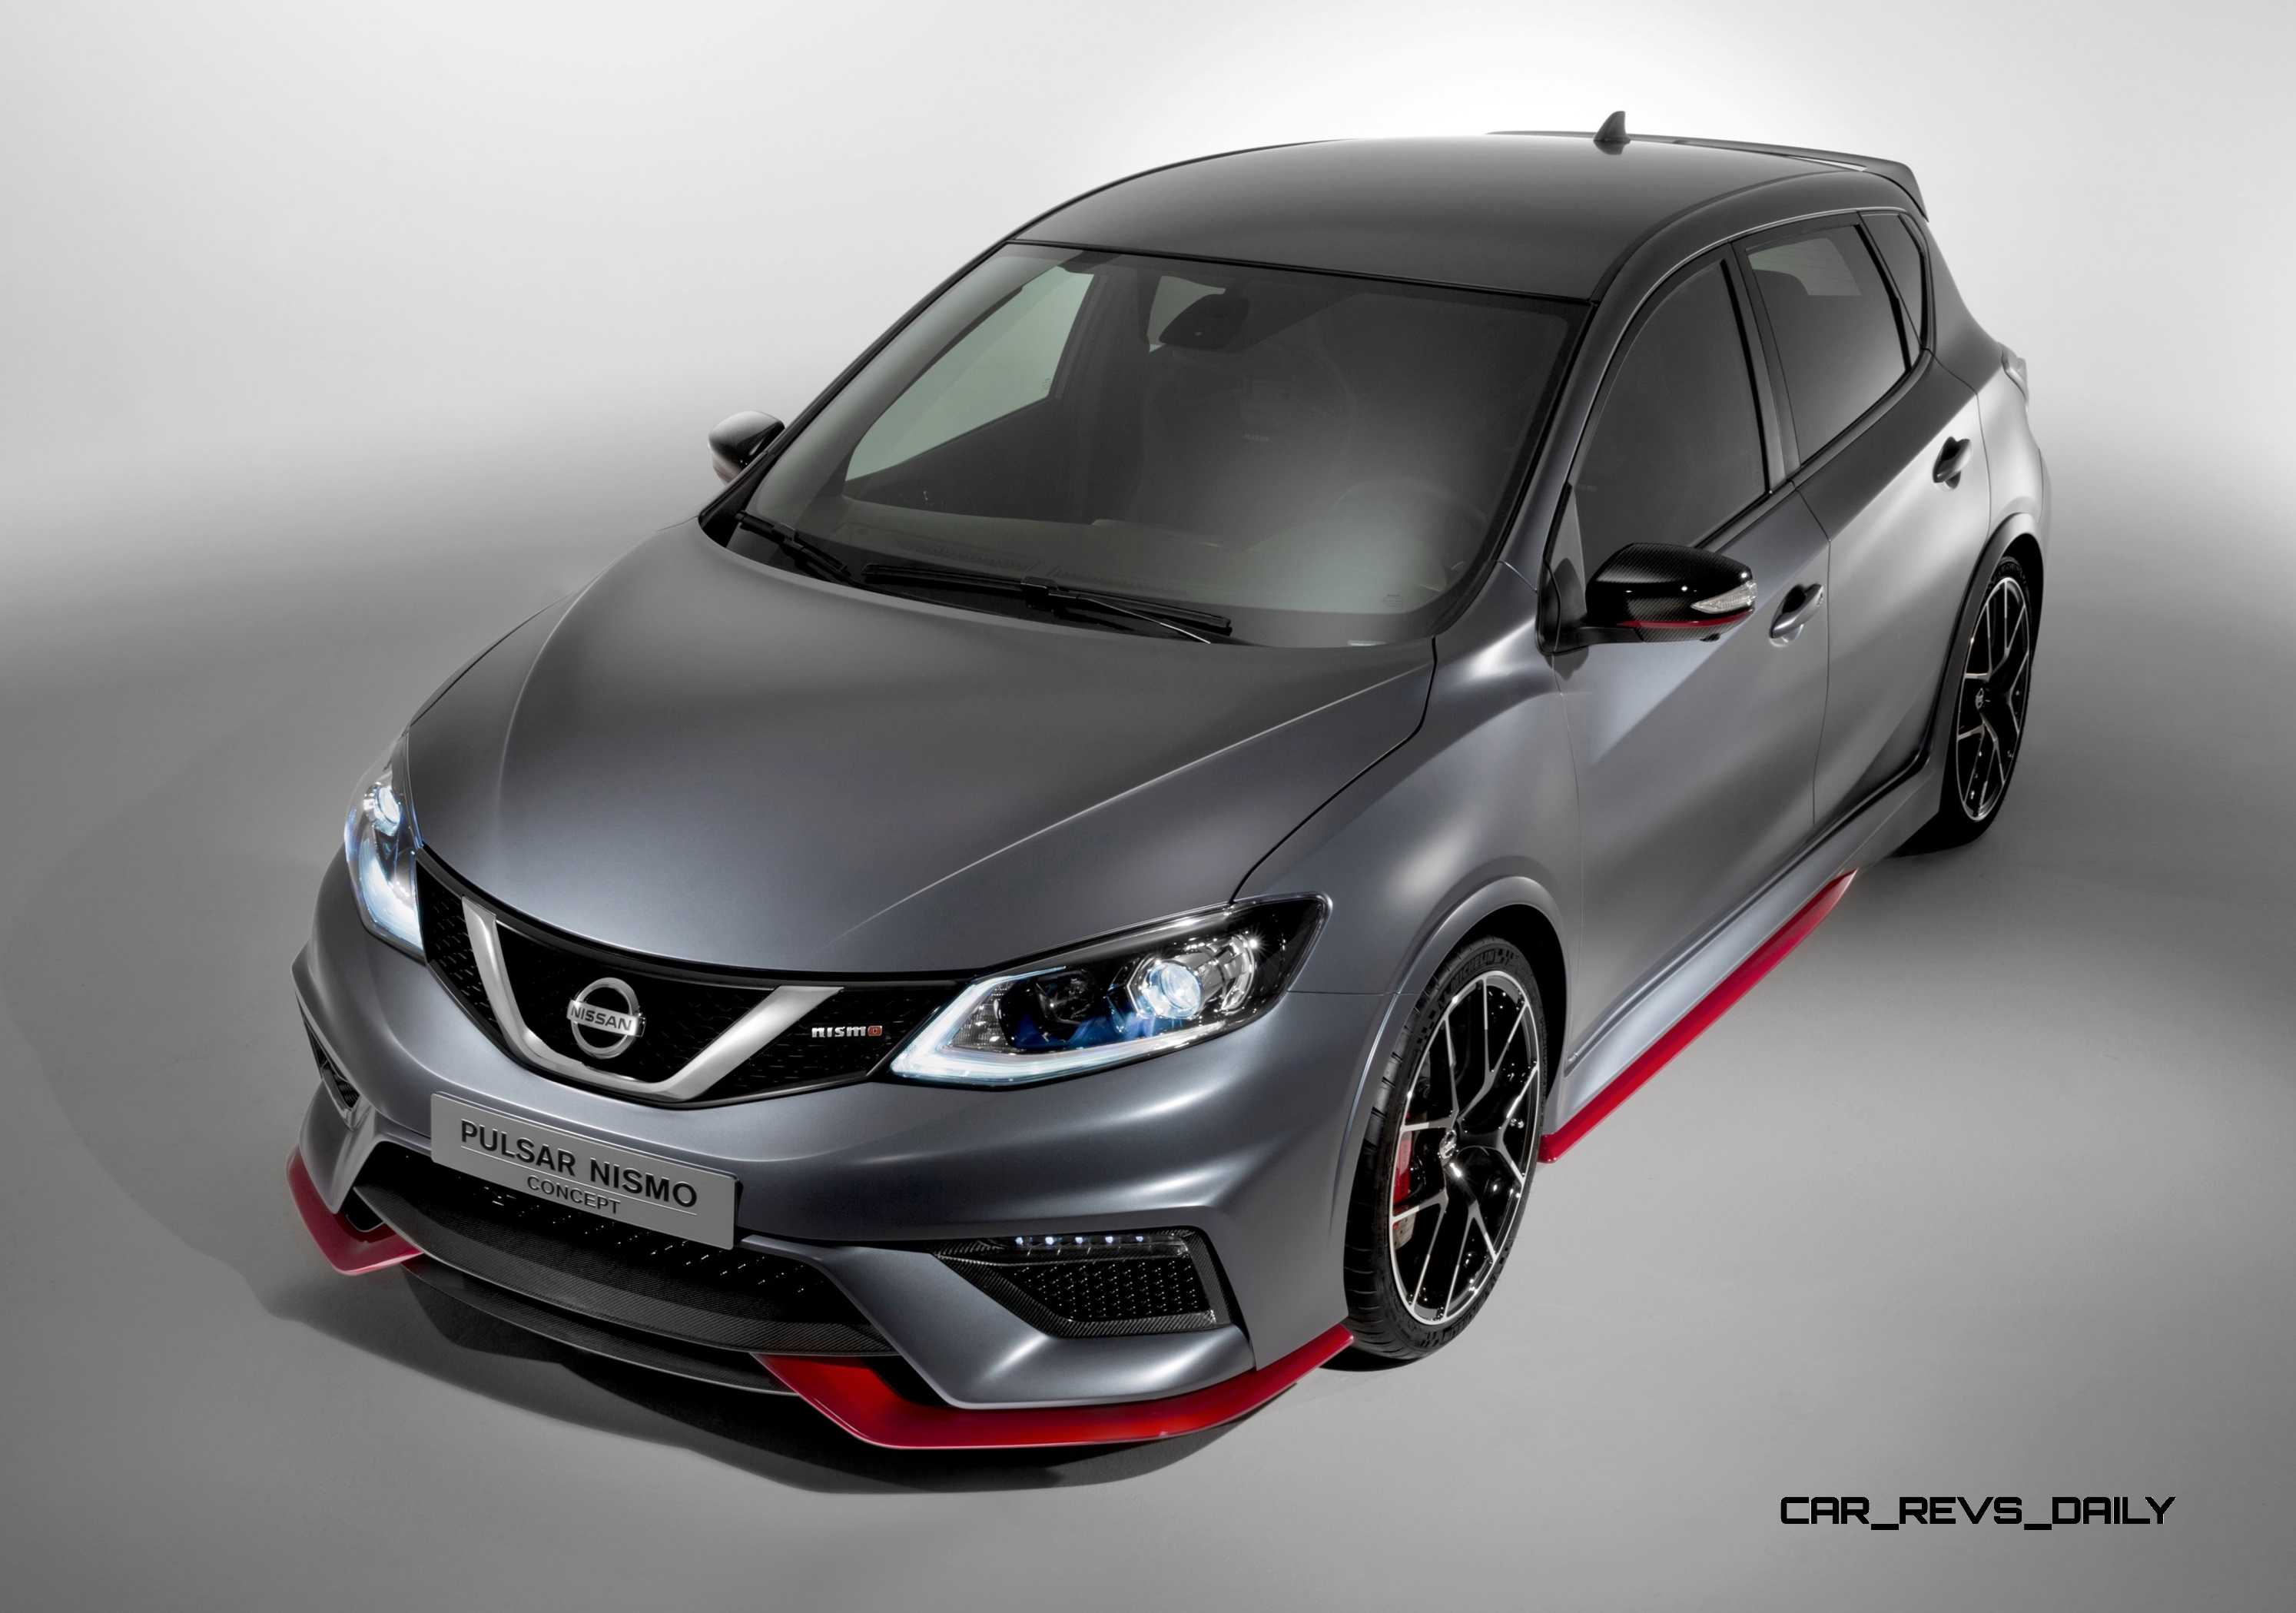 Nissan Gt R What We Know So Far besides Nissan Quest Concept additionally Rip Nissan Leaf With A Kwh Battery in addition Nissan Pathfinder Concept besides Tokyo Nissan Nv Caravan Live Photos. on nismo nissan pulsar concept